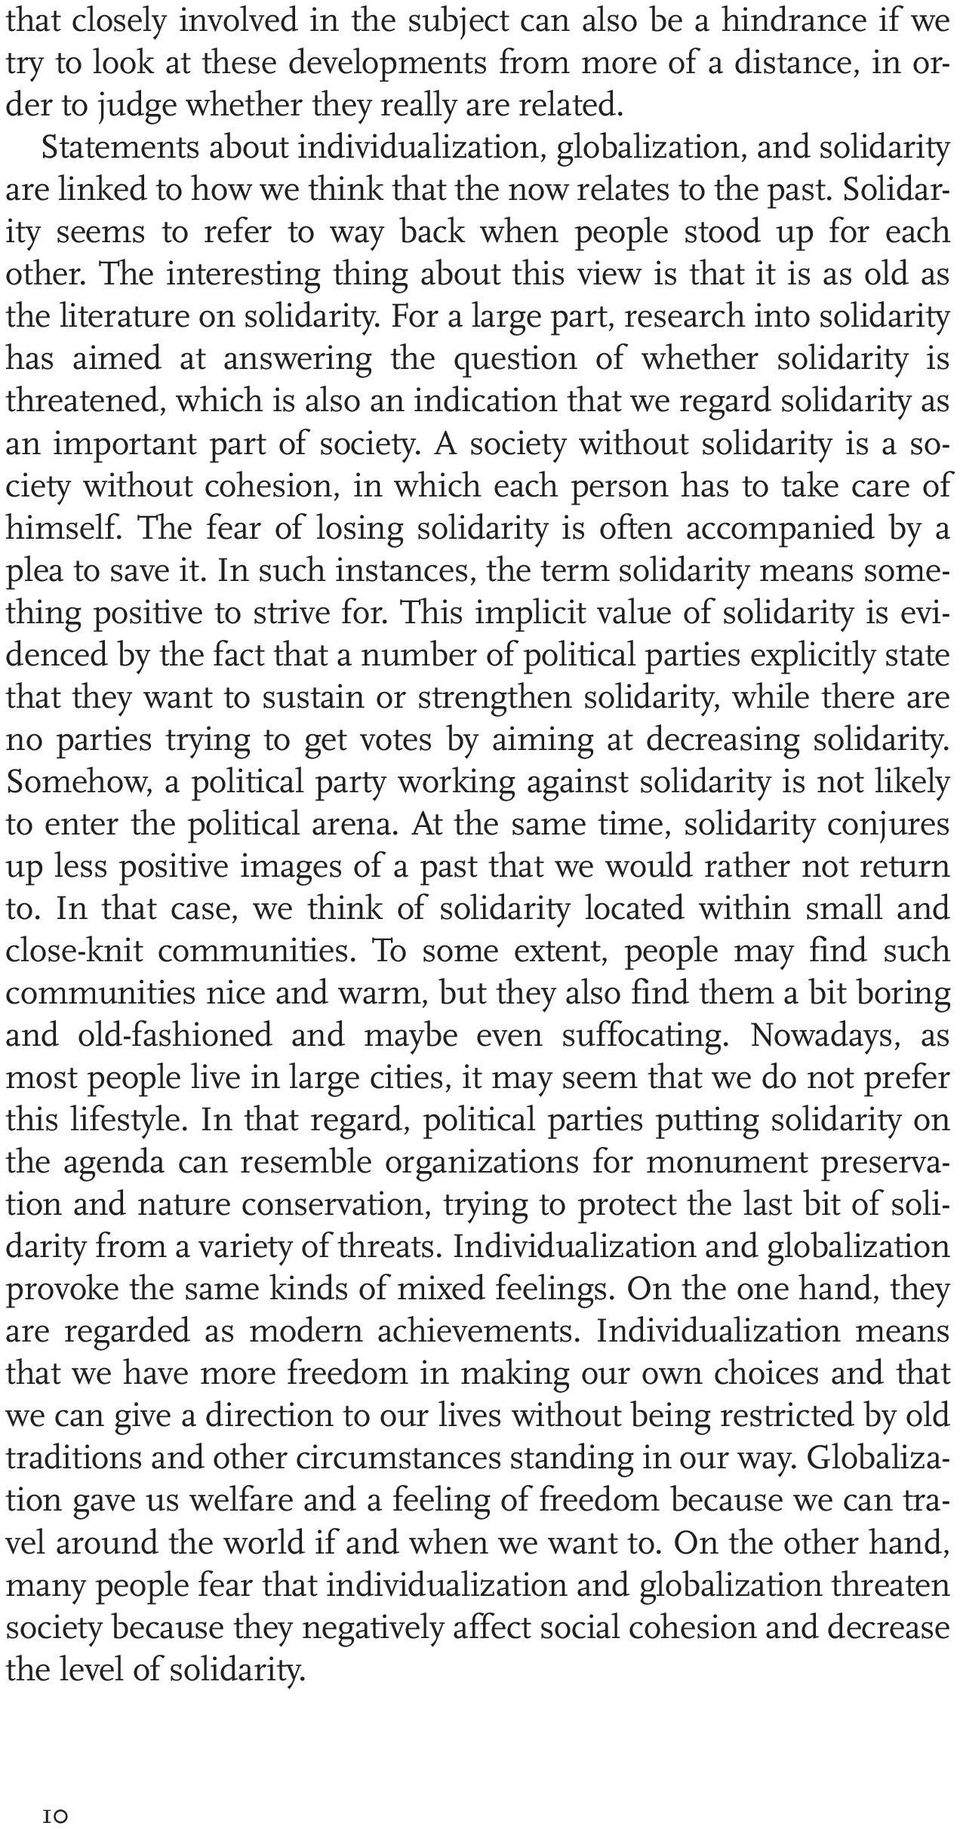 Solidarity seems to refer to way back when people stood up for each other. The interesting thing about this view is that it is as old as the literature on solidarity.